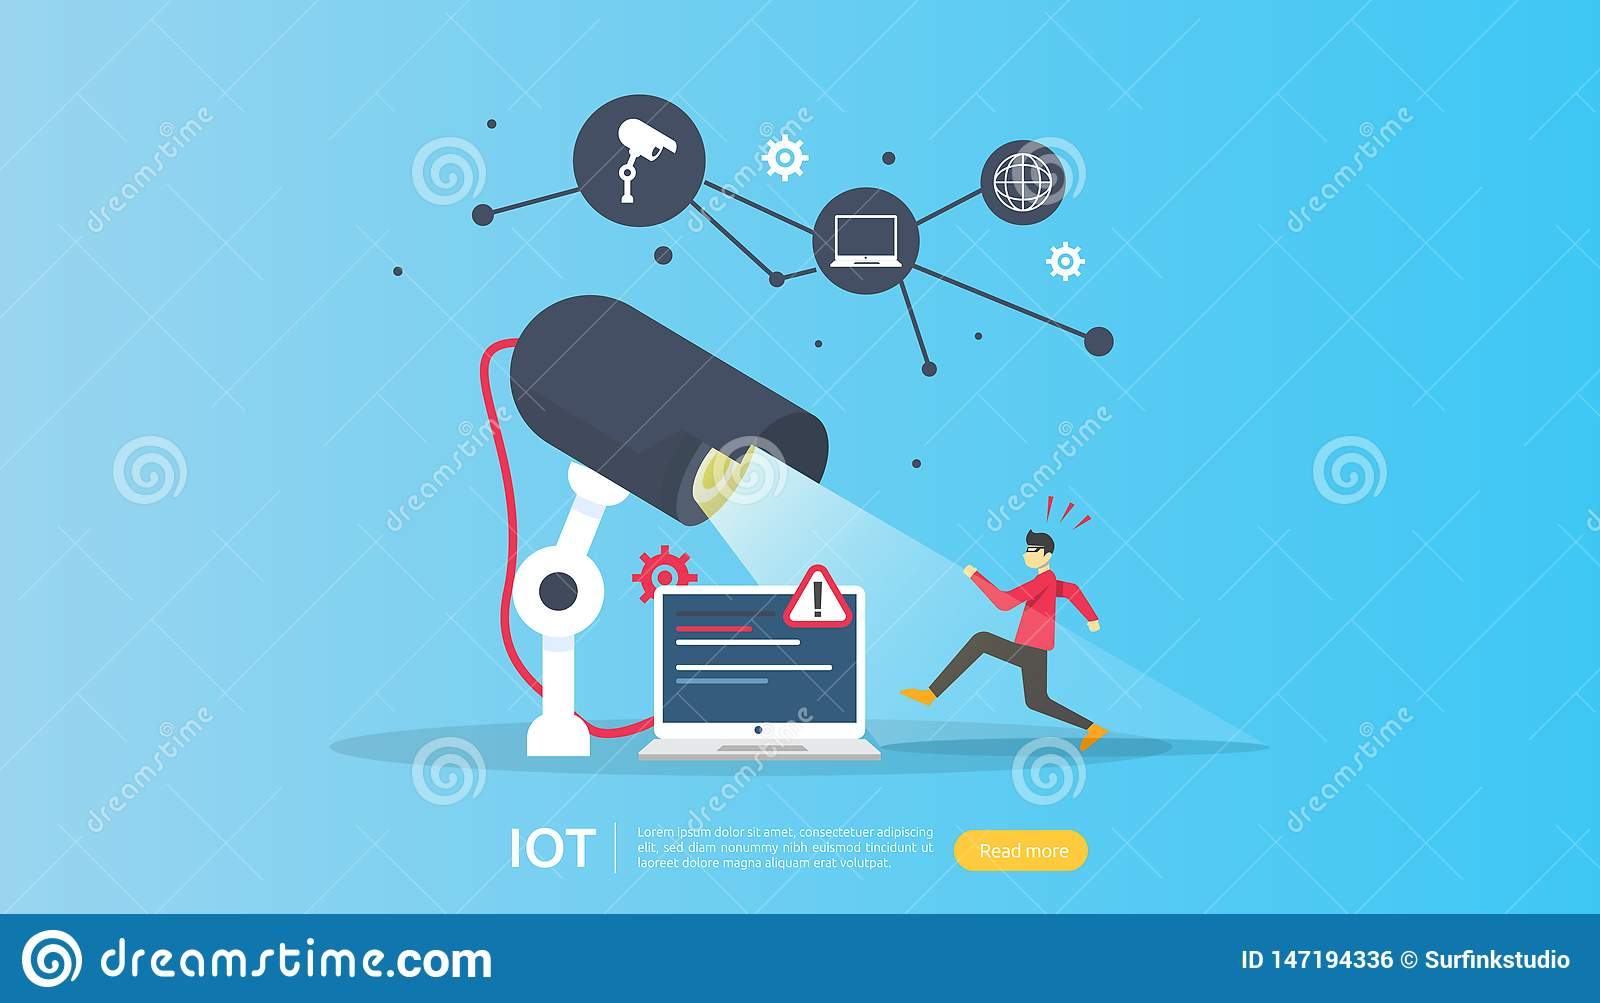 CCTV security camera monitoring. thief shocked detected. IOT internet of things smart house concept for industrial 4.0. web